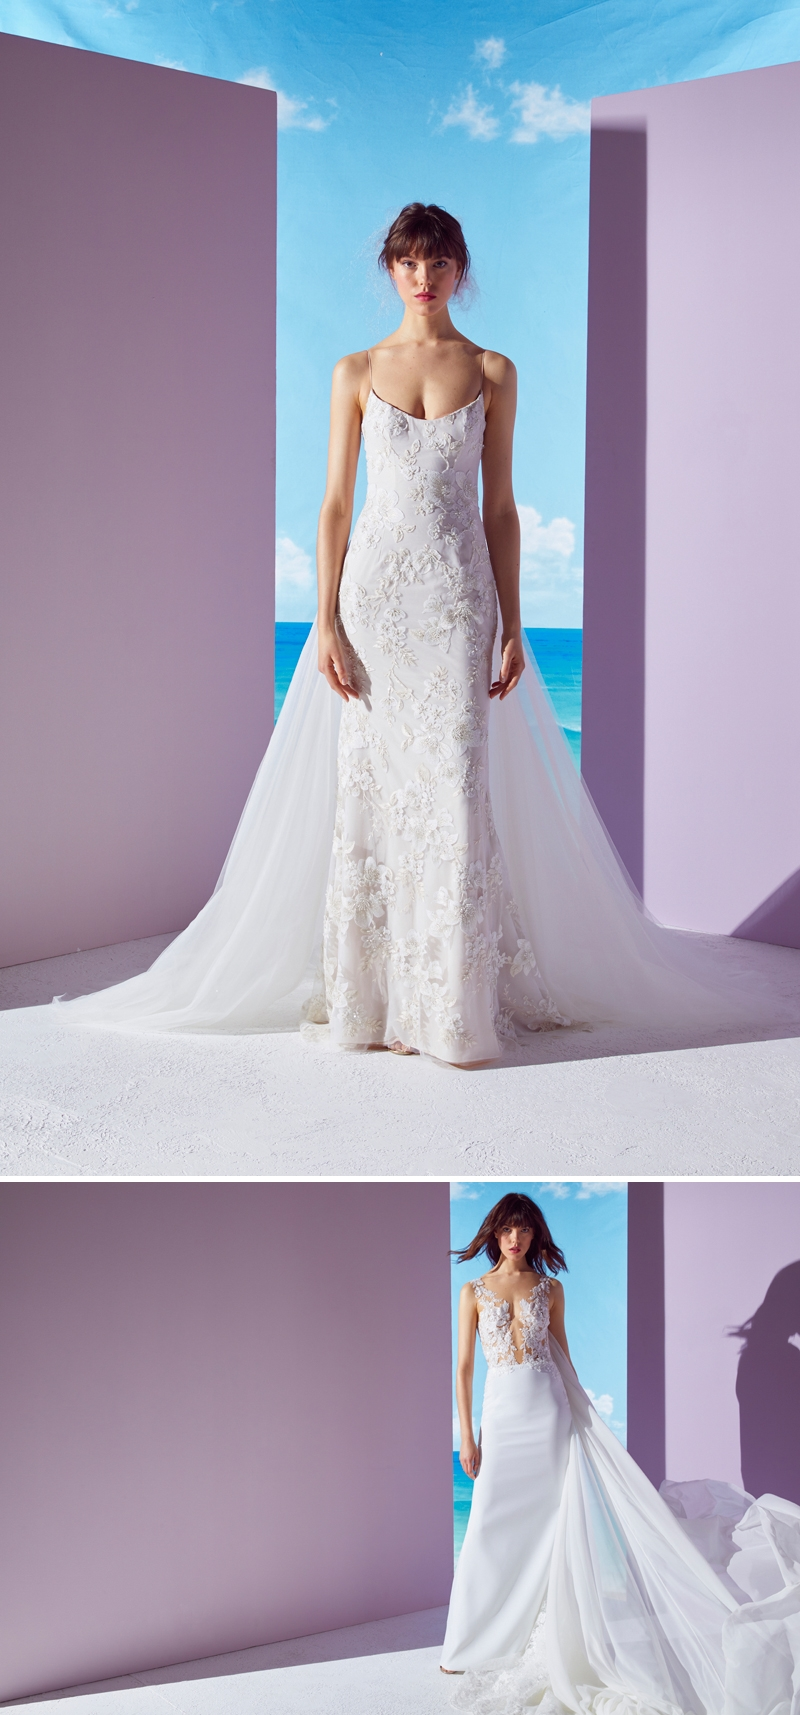 Ines Di Santo, Ines by Ines Di Santo, Ines by Ines di Santo Spring 2019, Savvy Bride, Wedding Gowns, Bridal Trends, Bridal Fashion, Canadian Designer, Perfect Wedding Magazine, Perfect Wedding Blog